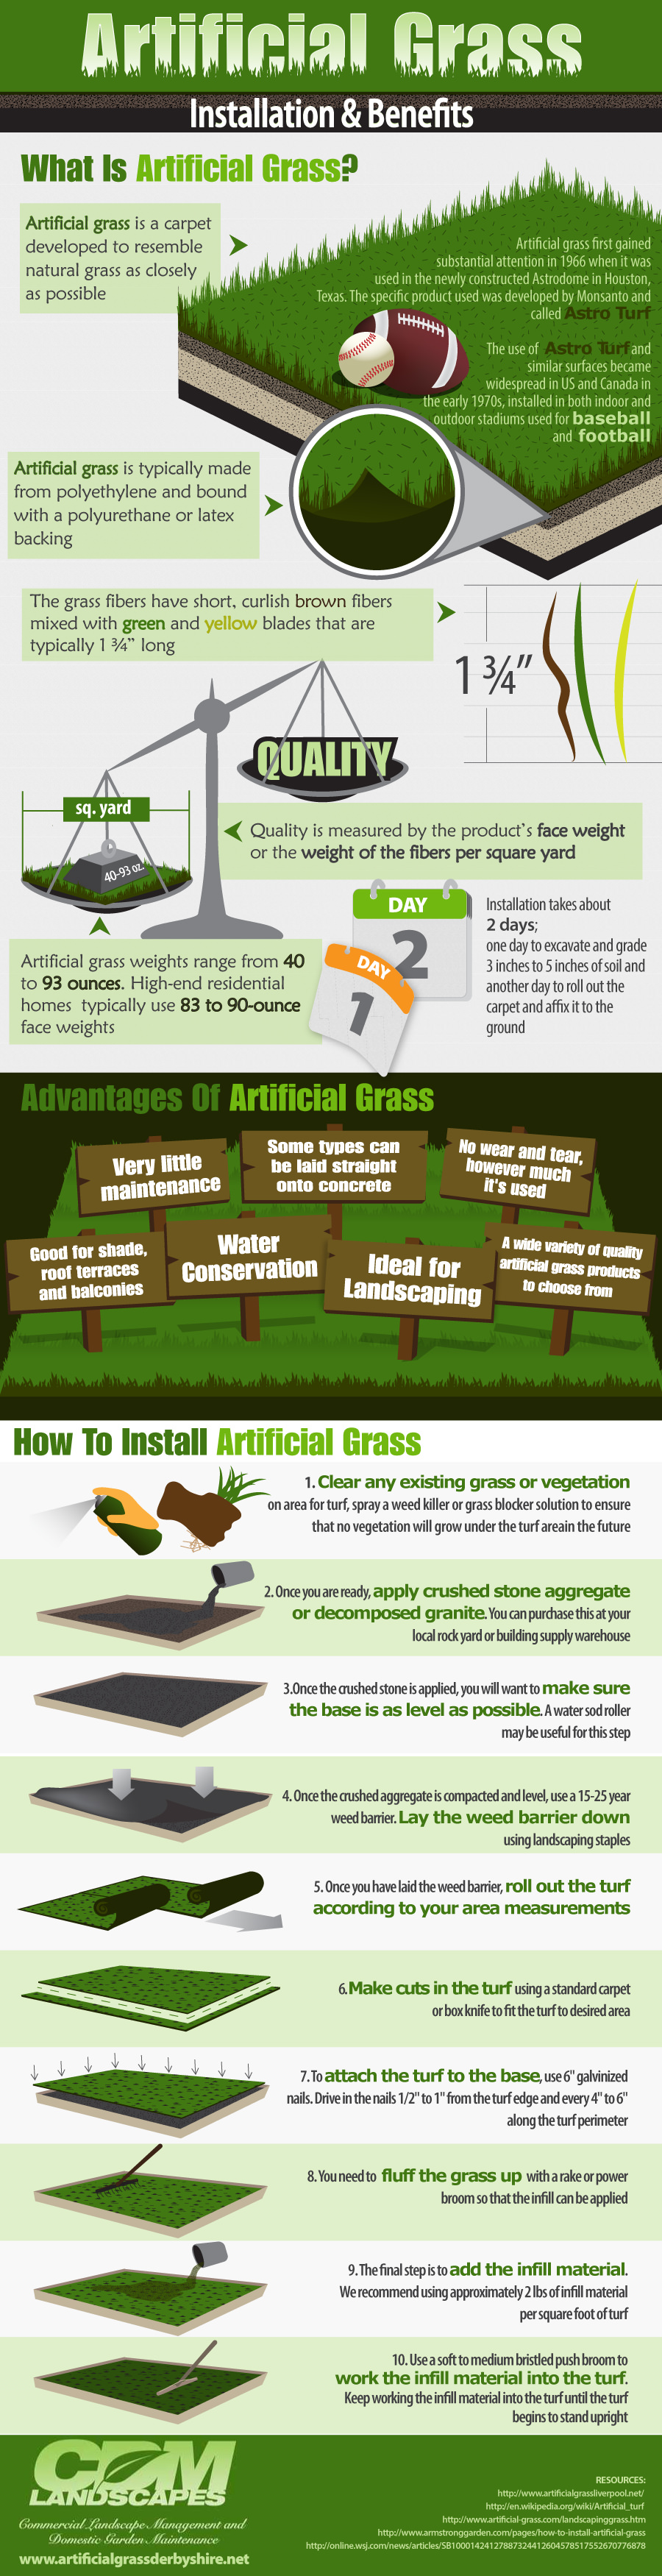 A solid instructional infographic on synthetic turf key differences